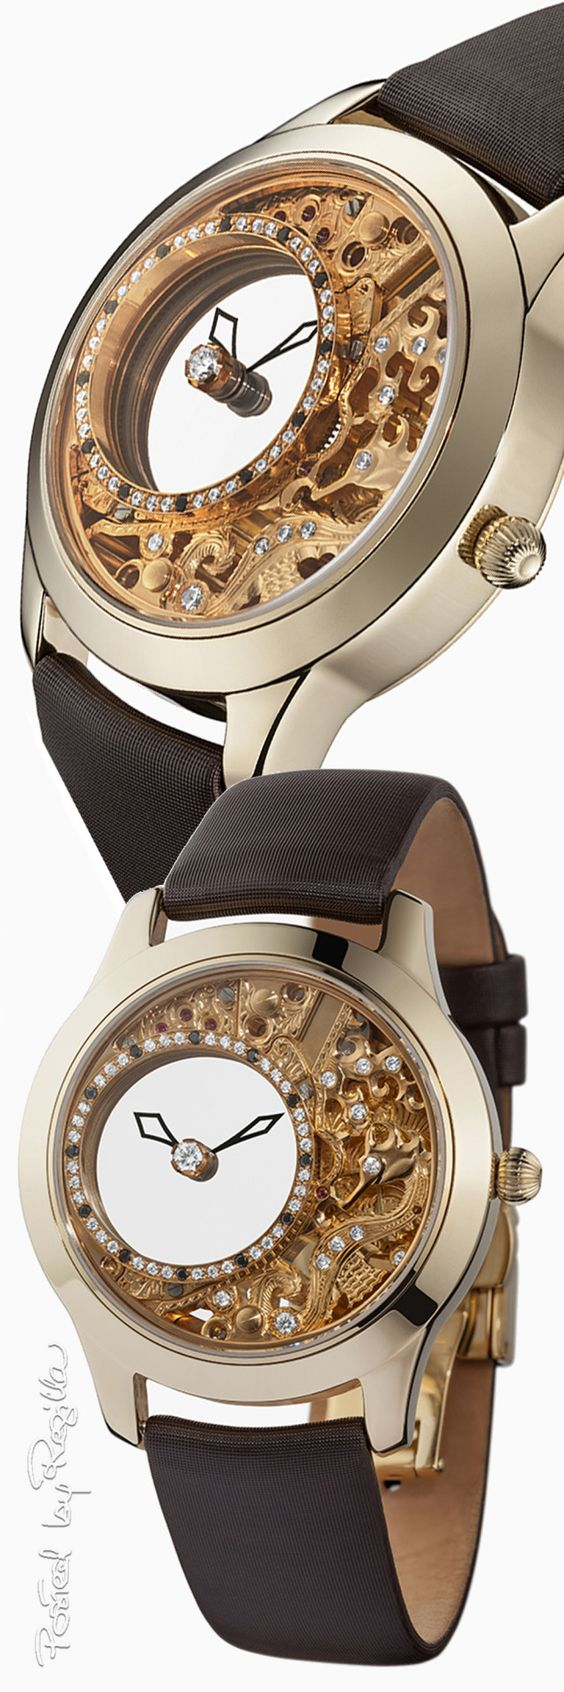 Regilla ⚜ Nika Watches